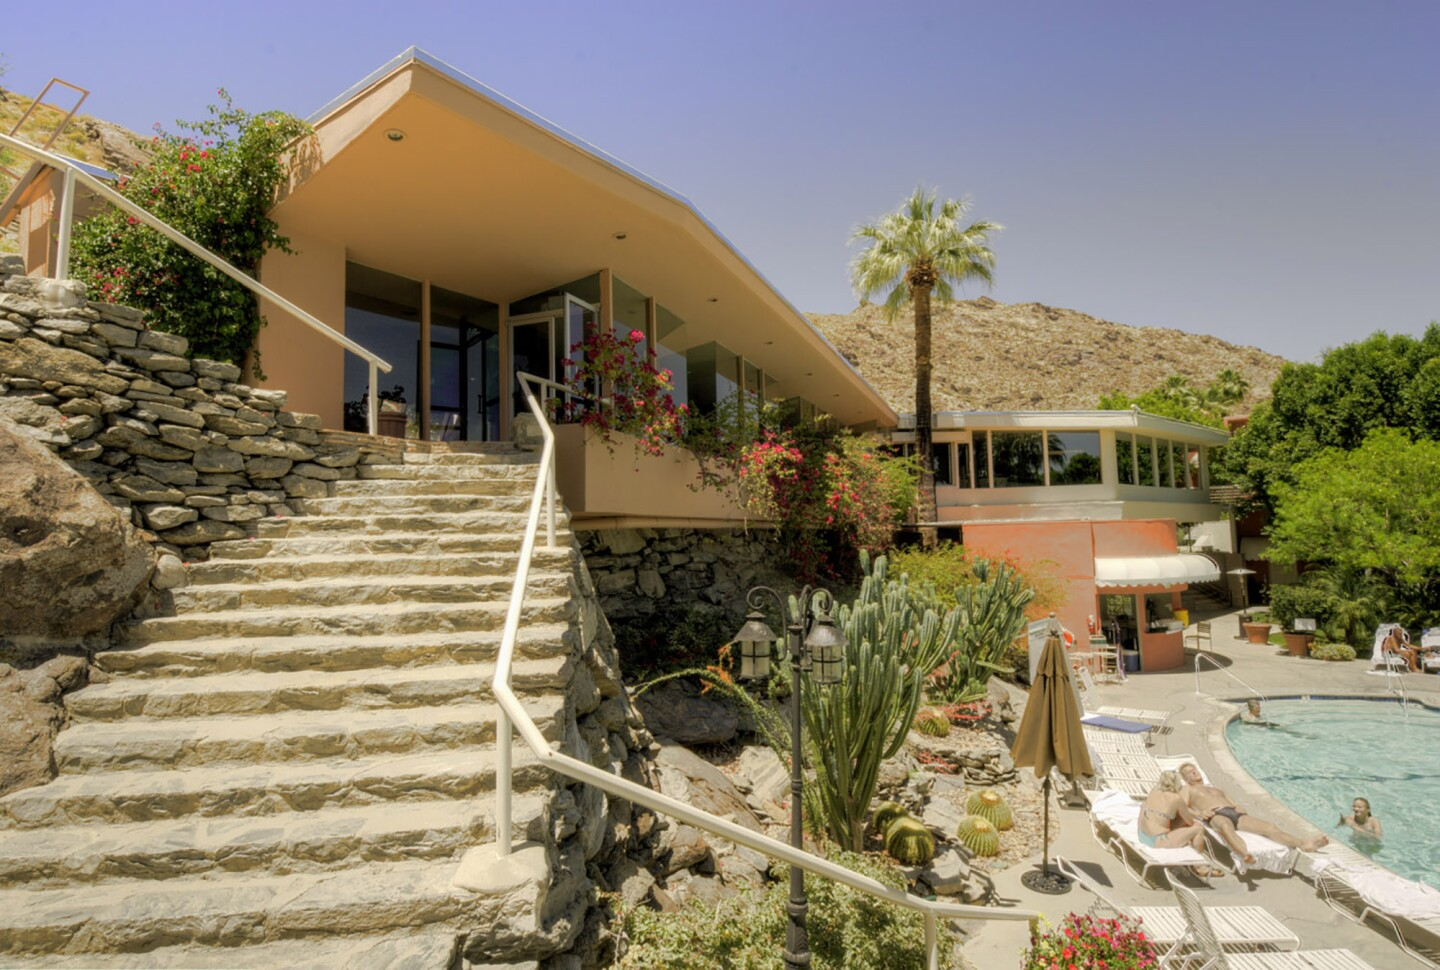 Tennis Club, exterior with staircase foreground, Palm Springs, CA, 2010 | David Horan for the Paul R. Williams Project at the Art Museum of the University of Memphis